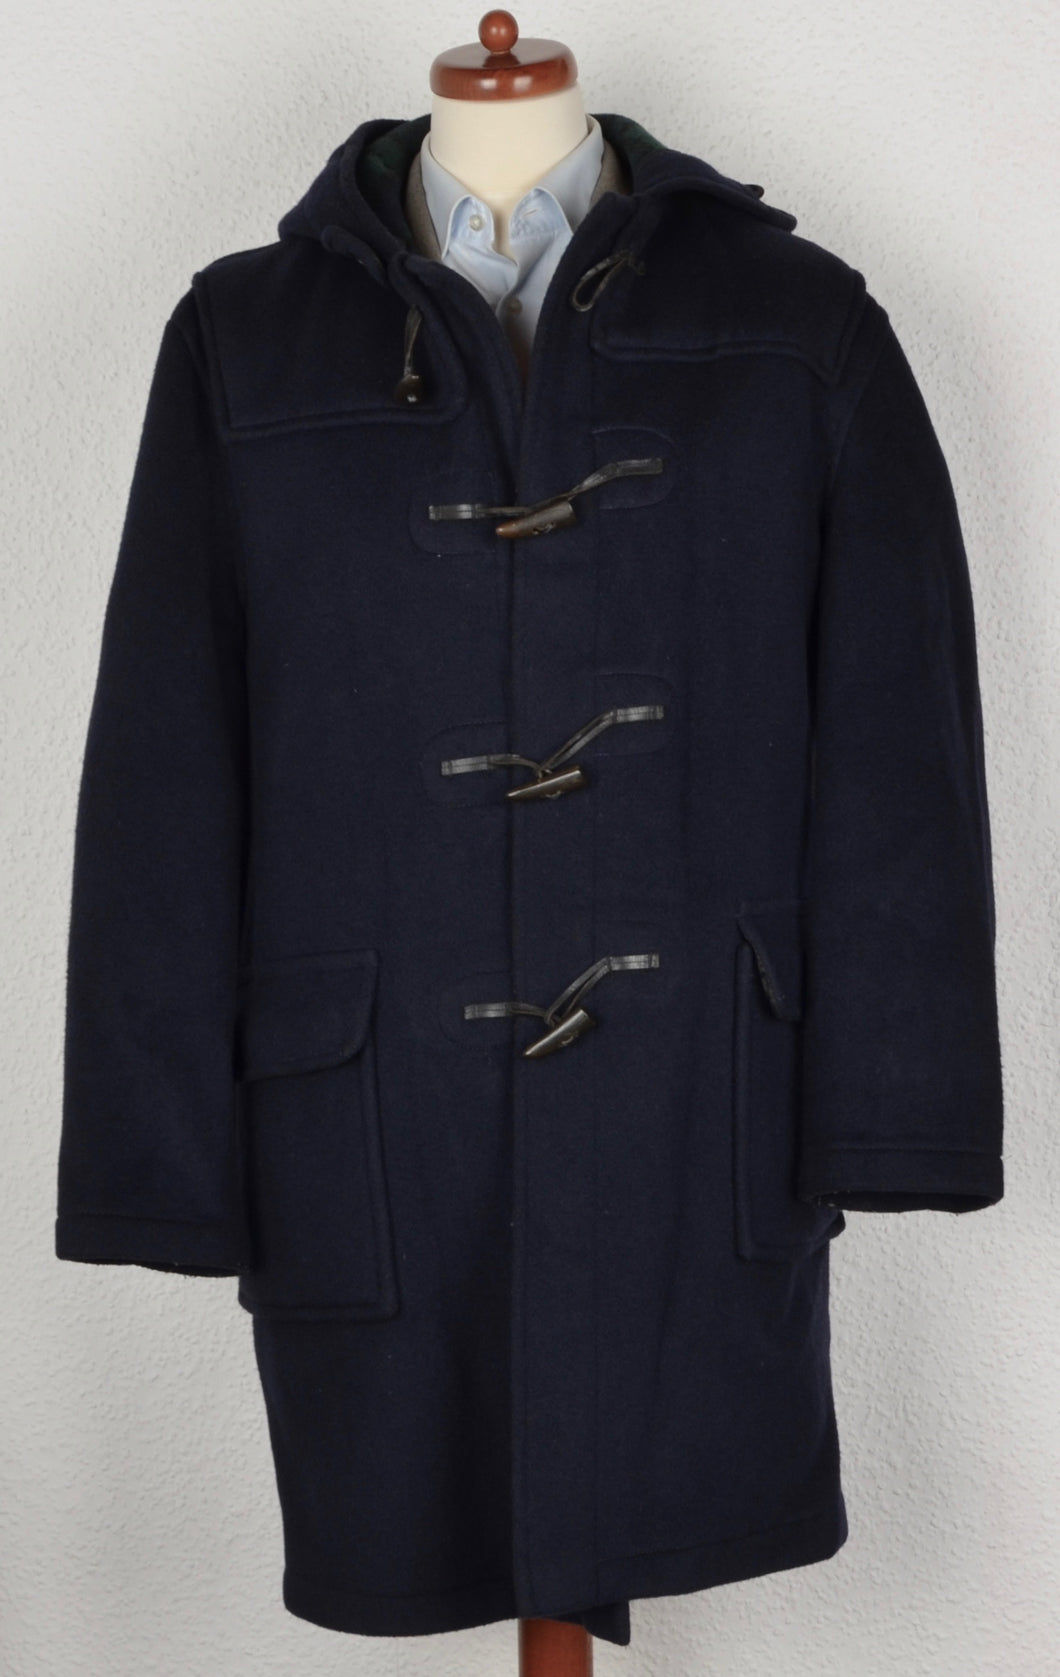 Gloverall Duffle Coat Size UK 42 EU 52 - Navy